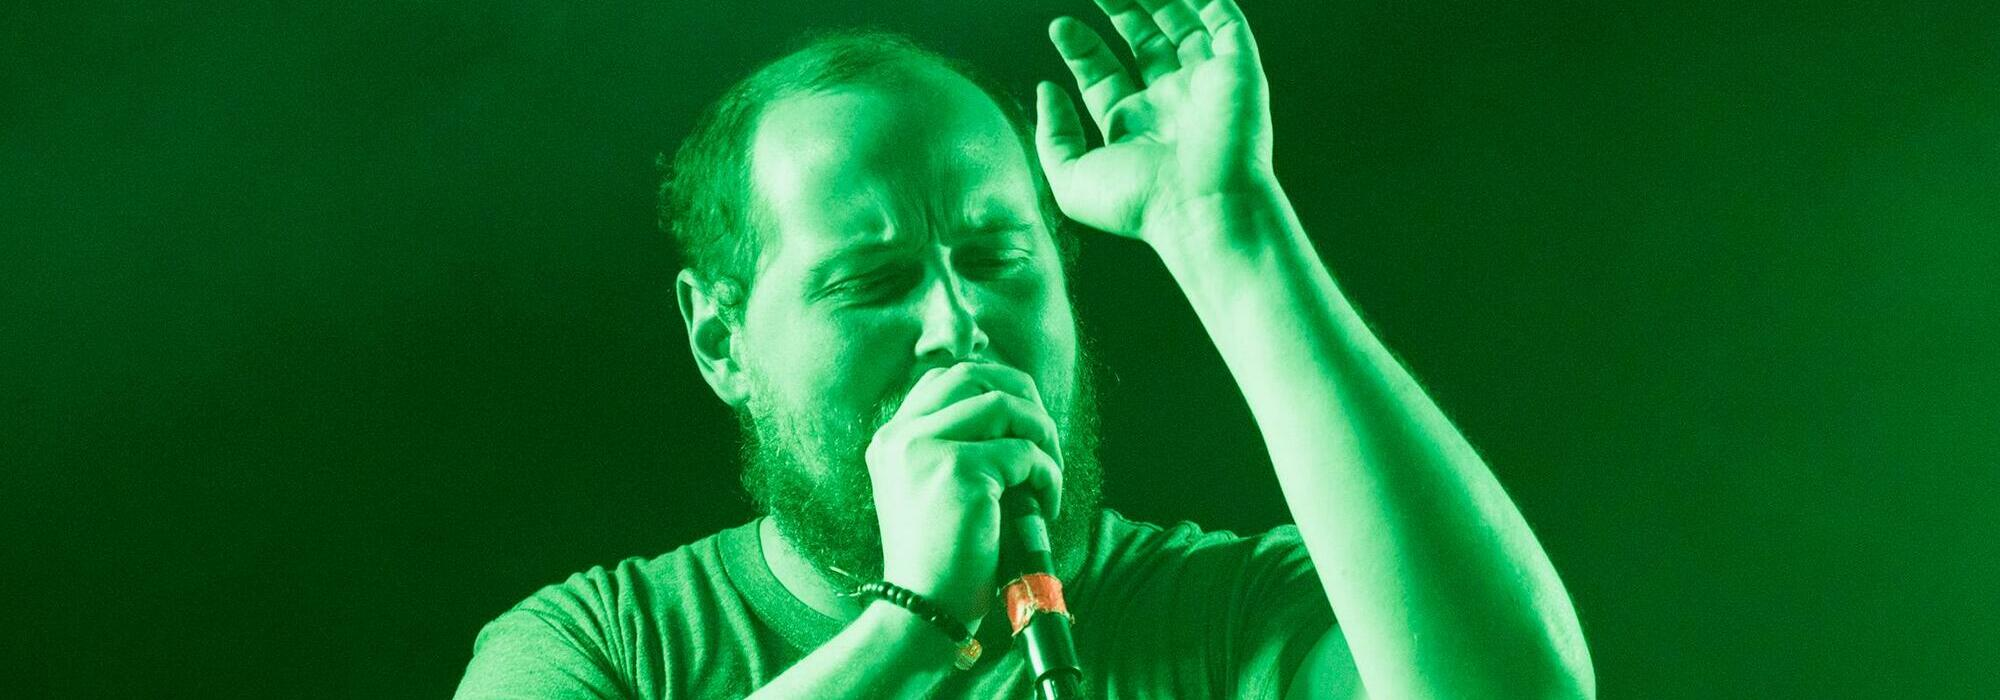 A Dan Deacon live event